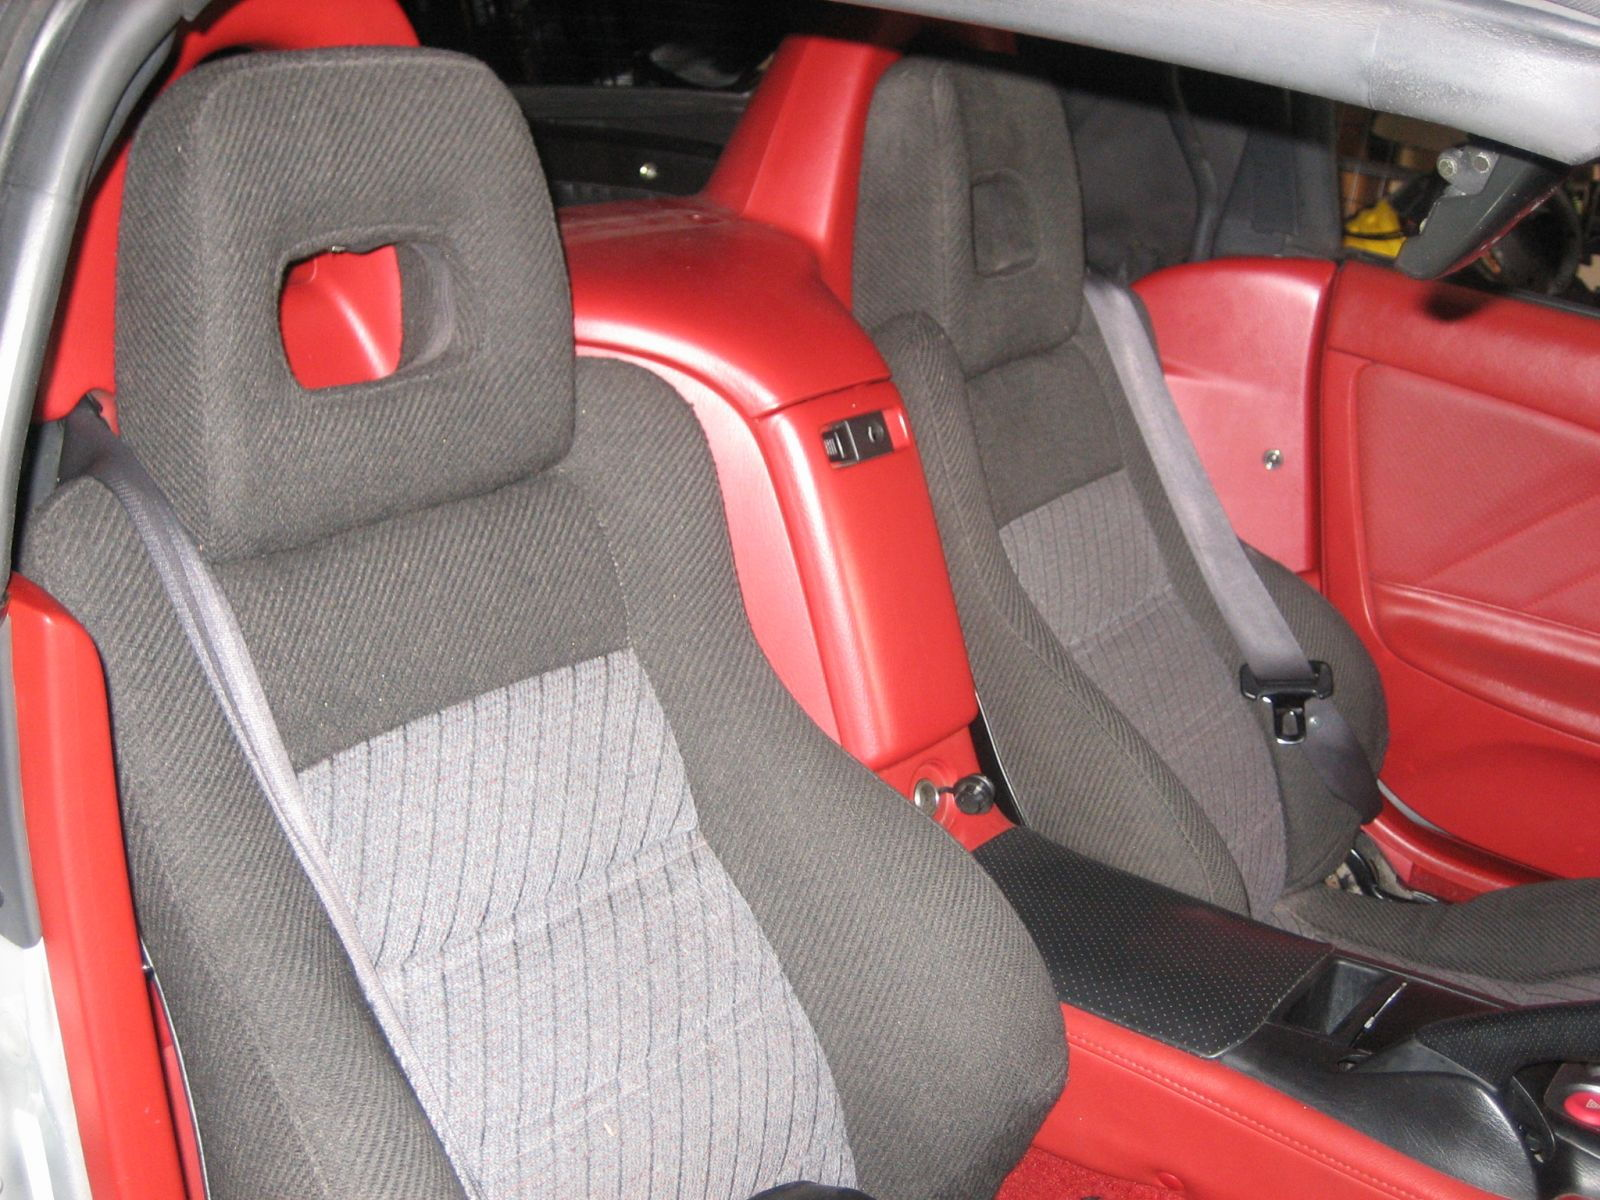 hight resolution of the s with the awesome crx seats in it